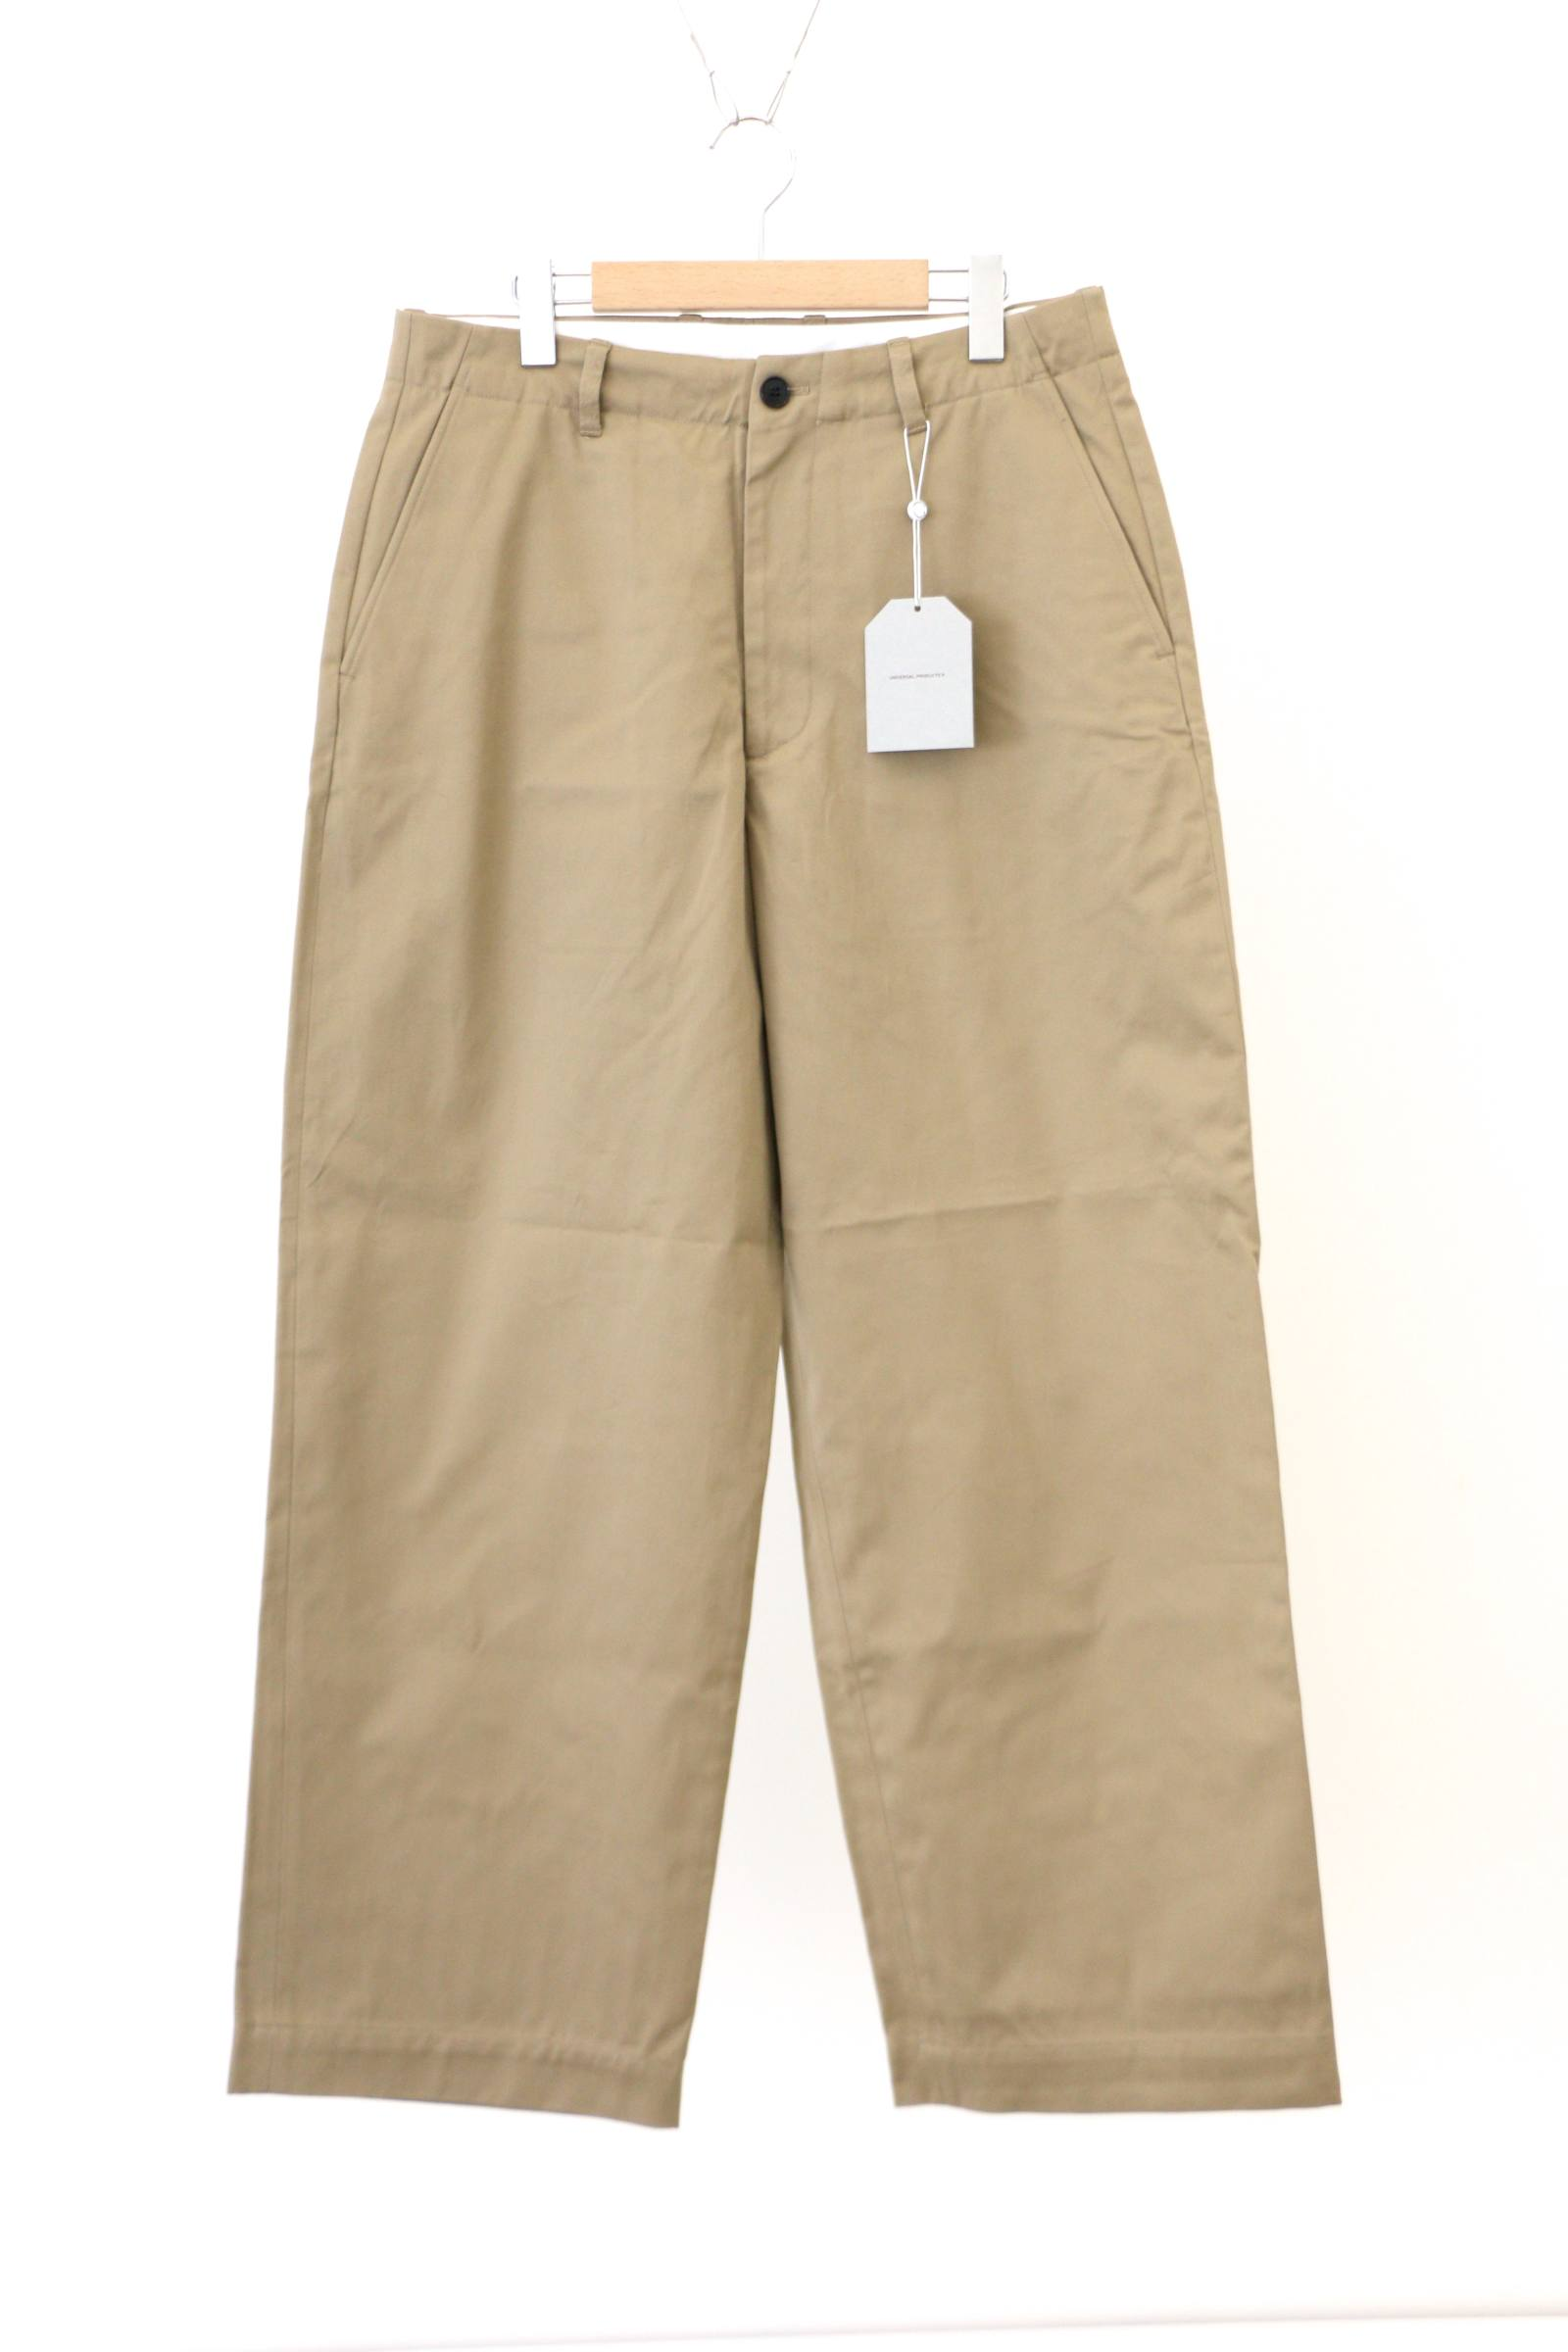 「ラスト1点!!」「即日発送可能!!」UNIVERSAL PRODUCTS NO TUCK WIDE CHINO TROUSERS BEIGE